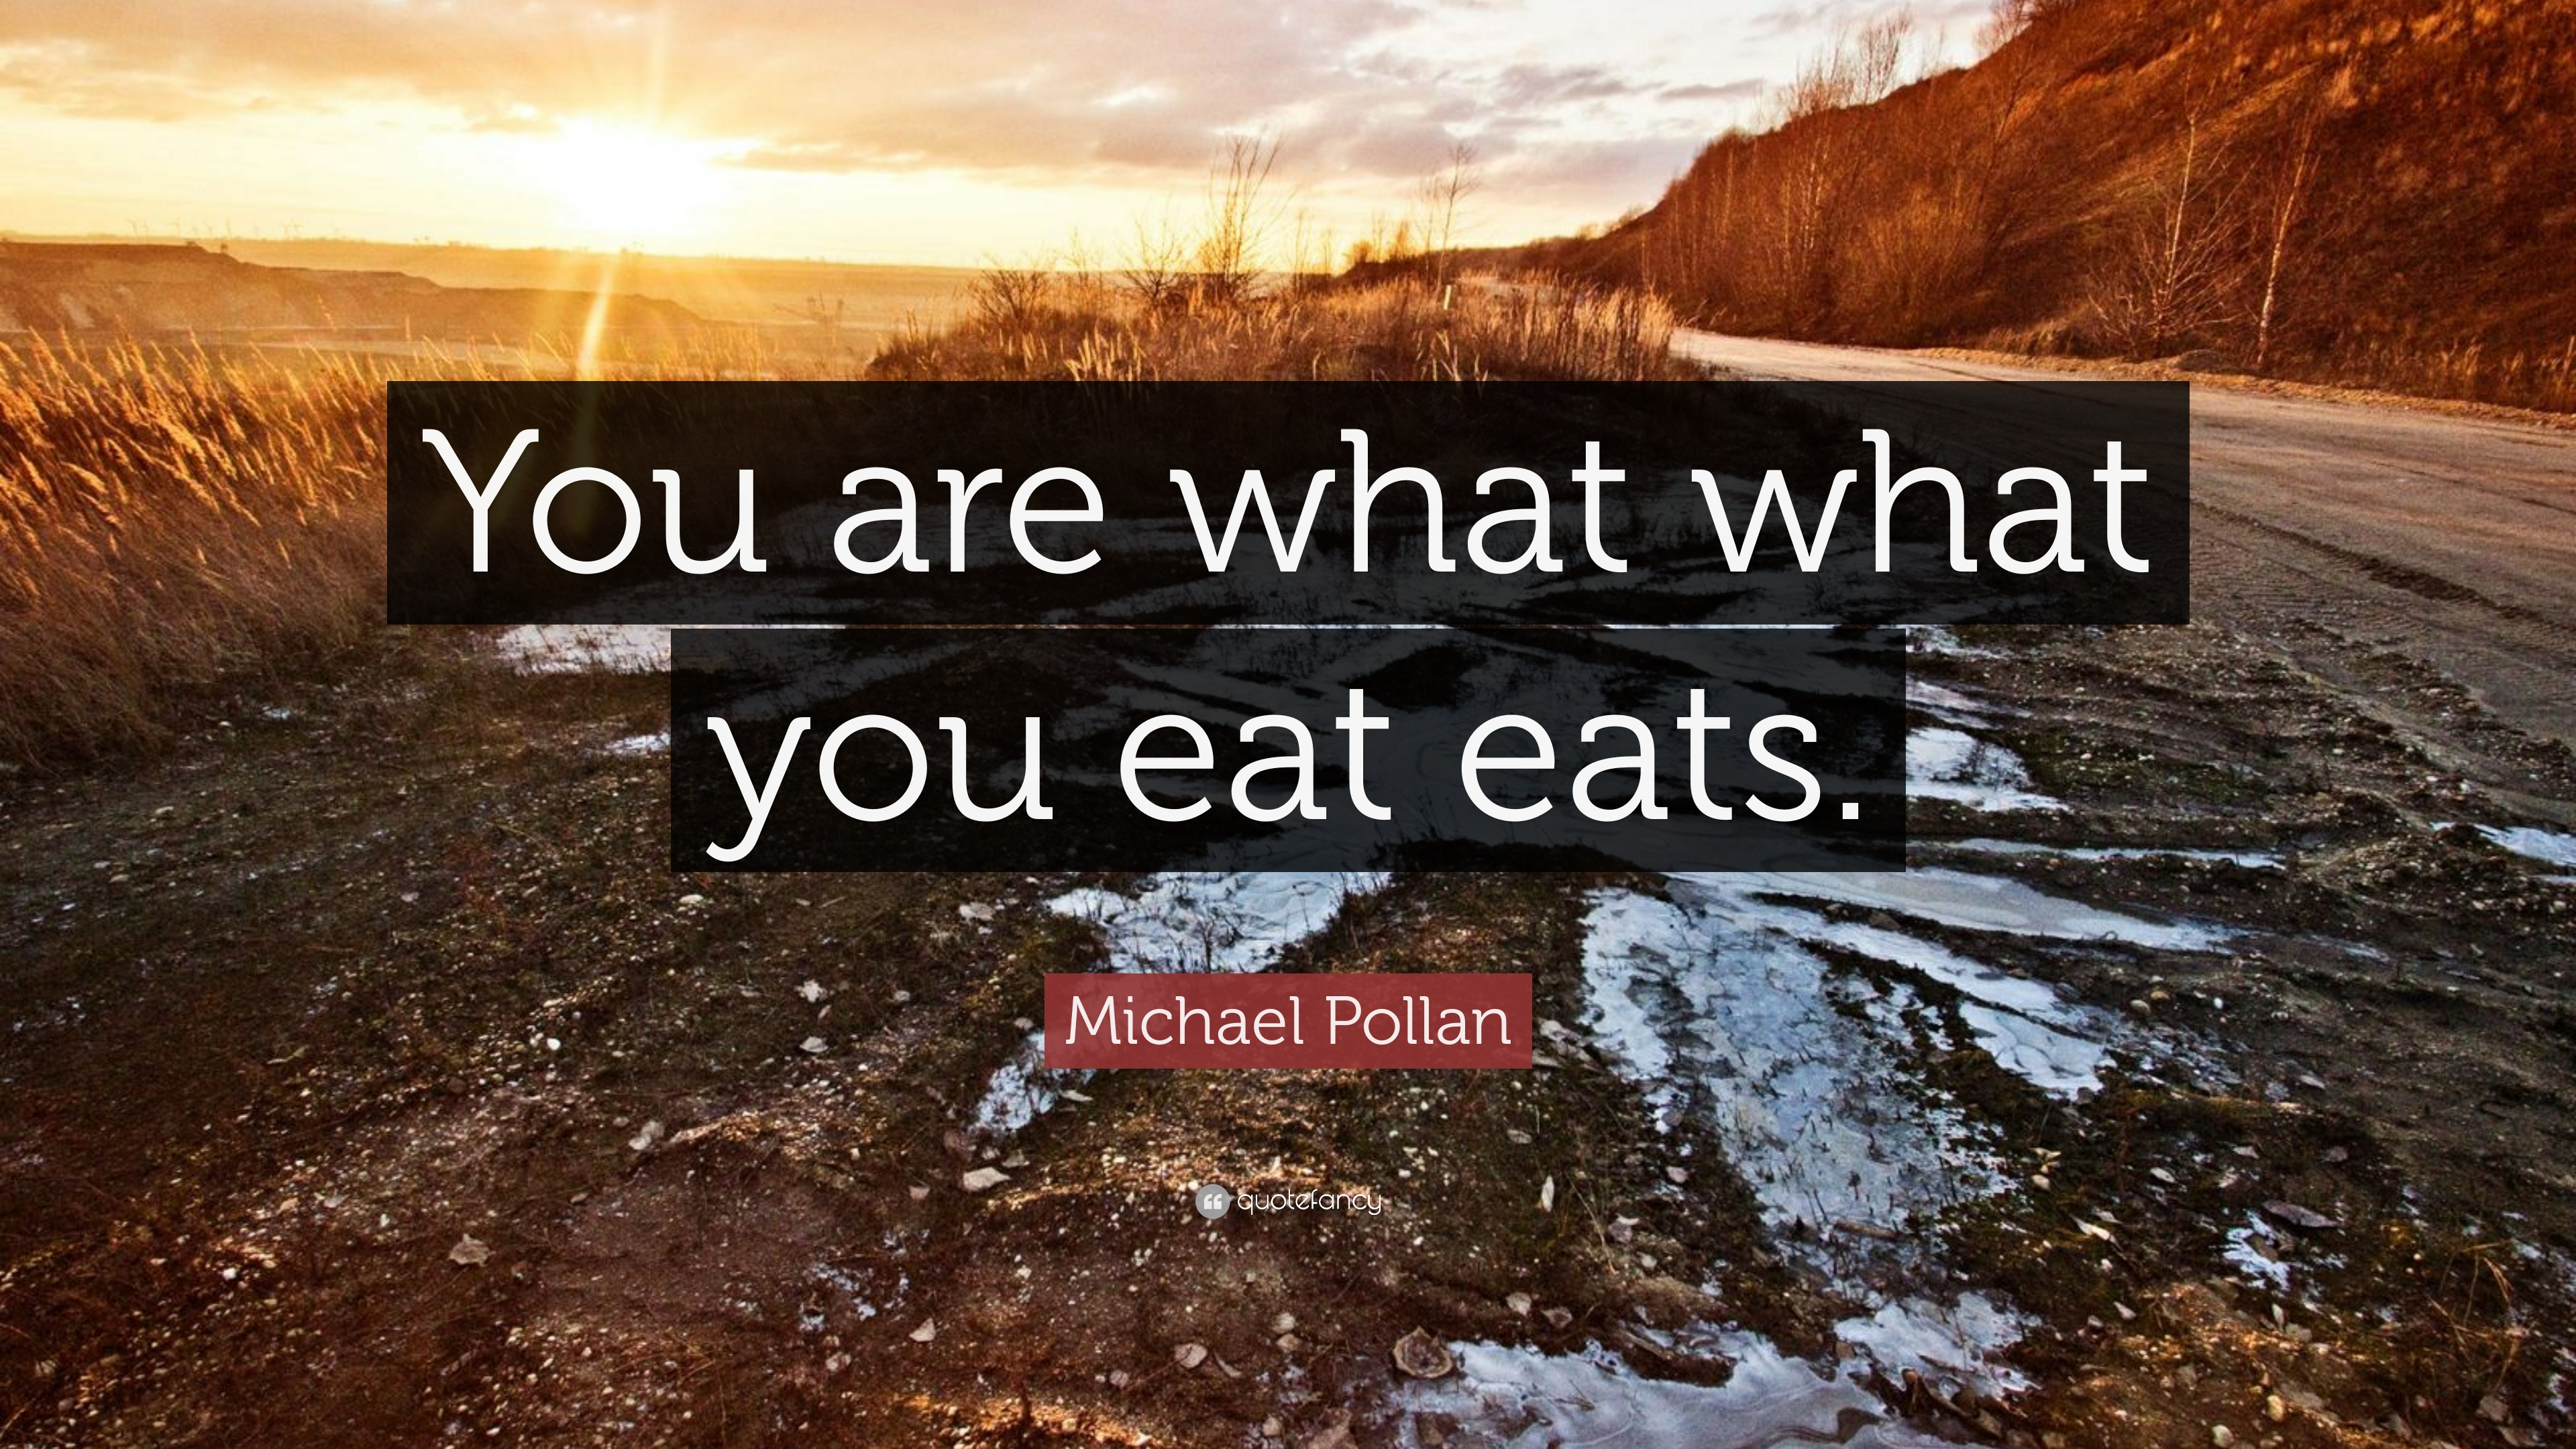 Michael Pollan Quote You Are What What You Eat Eats 7